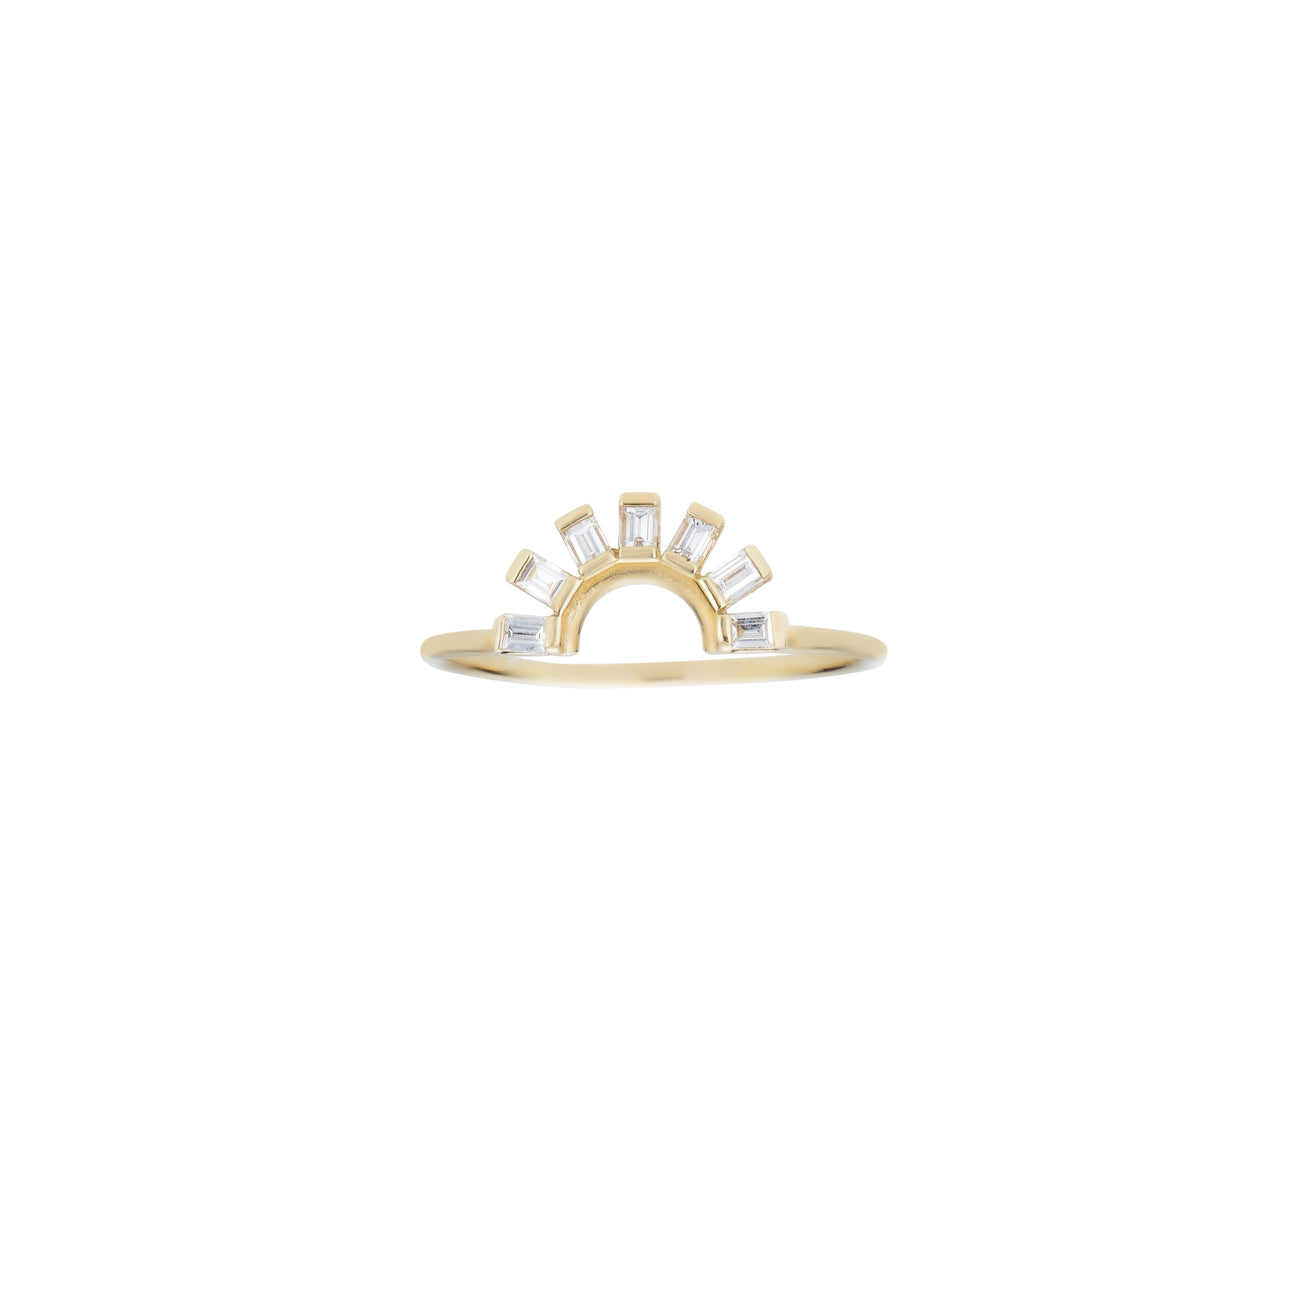 Image of Sunrise Baguette Diamond Ring